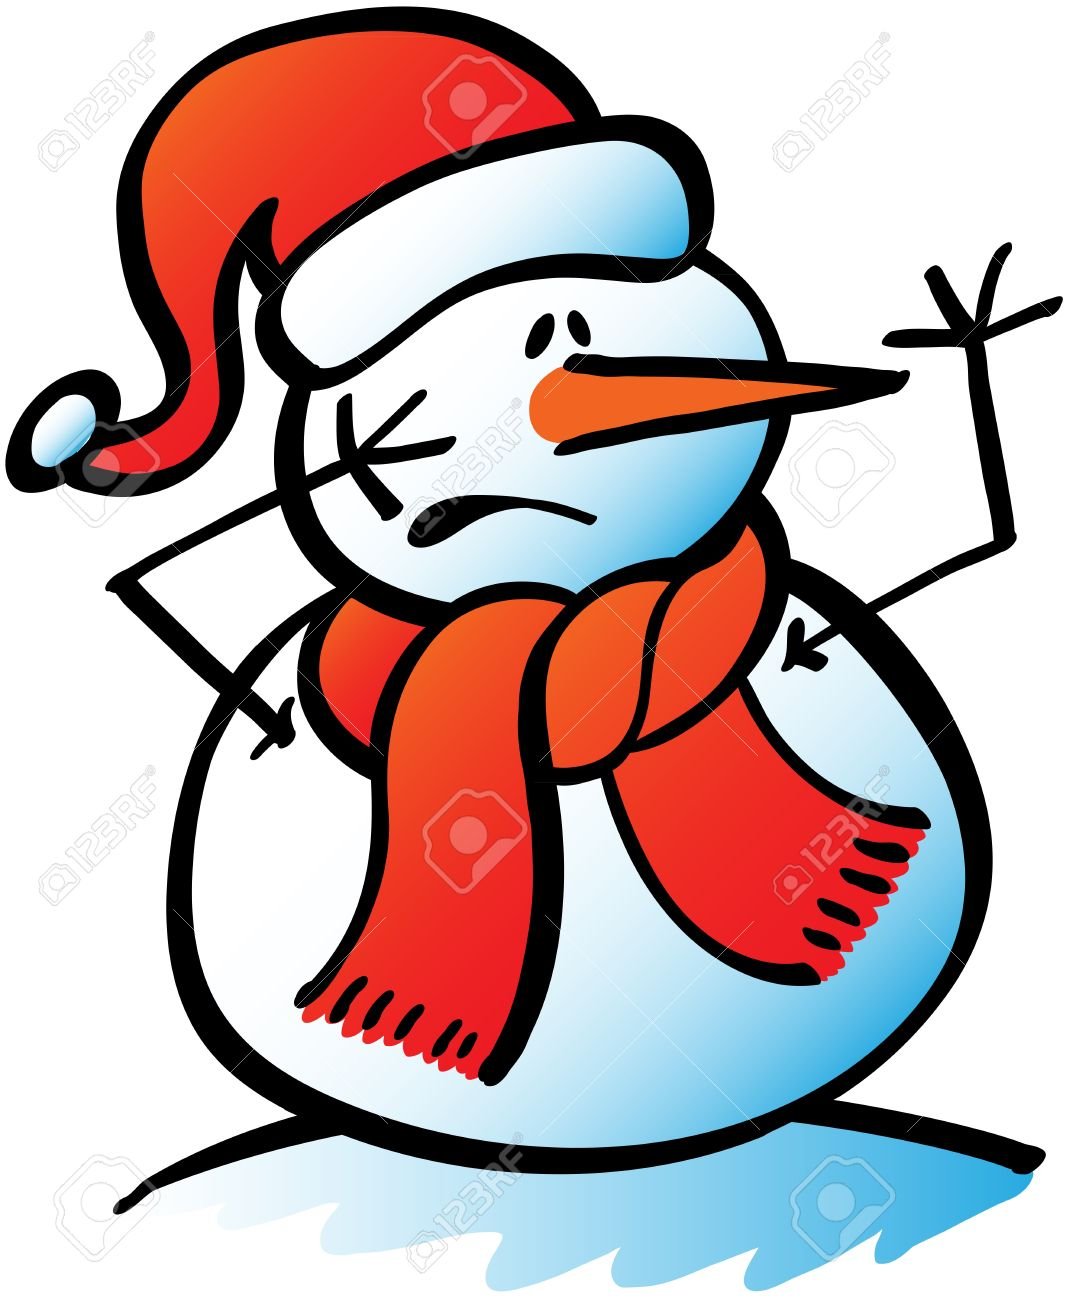 hight resolution of funny christmas snowman wearing santa hat and red scarf while trying to get attention by rising